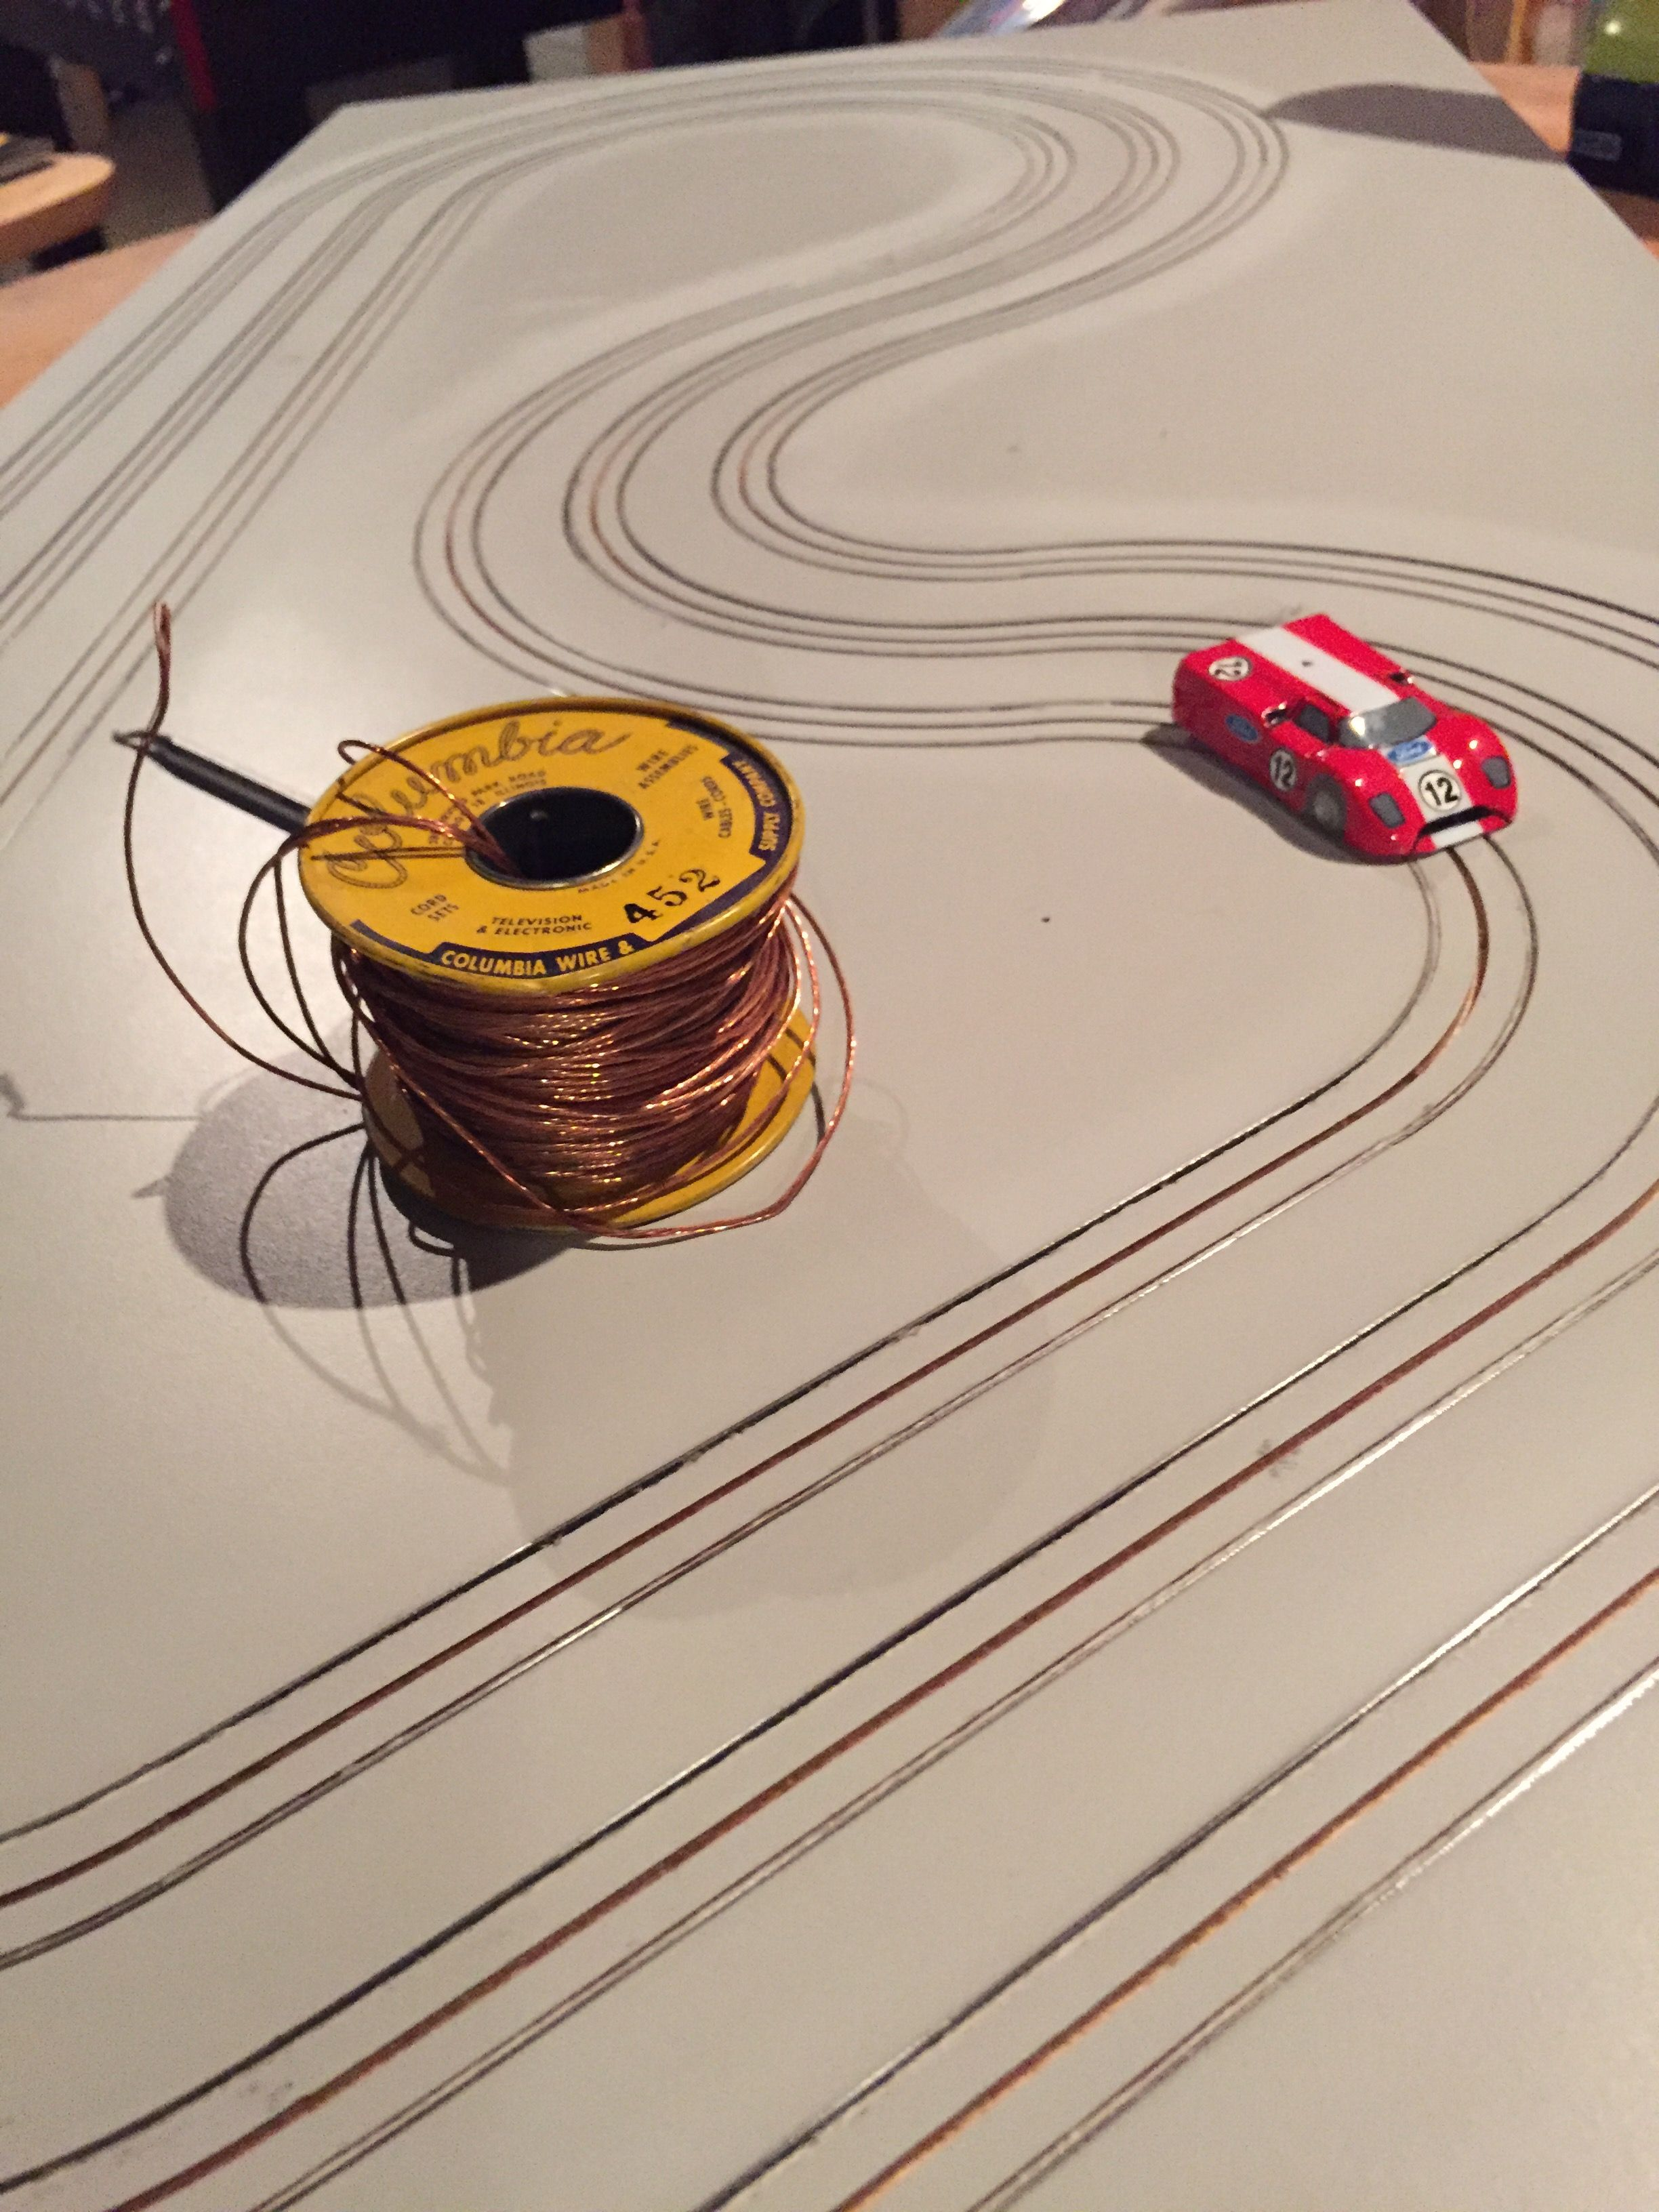 hight resolution of ho routed slot car track finishing up